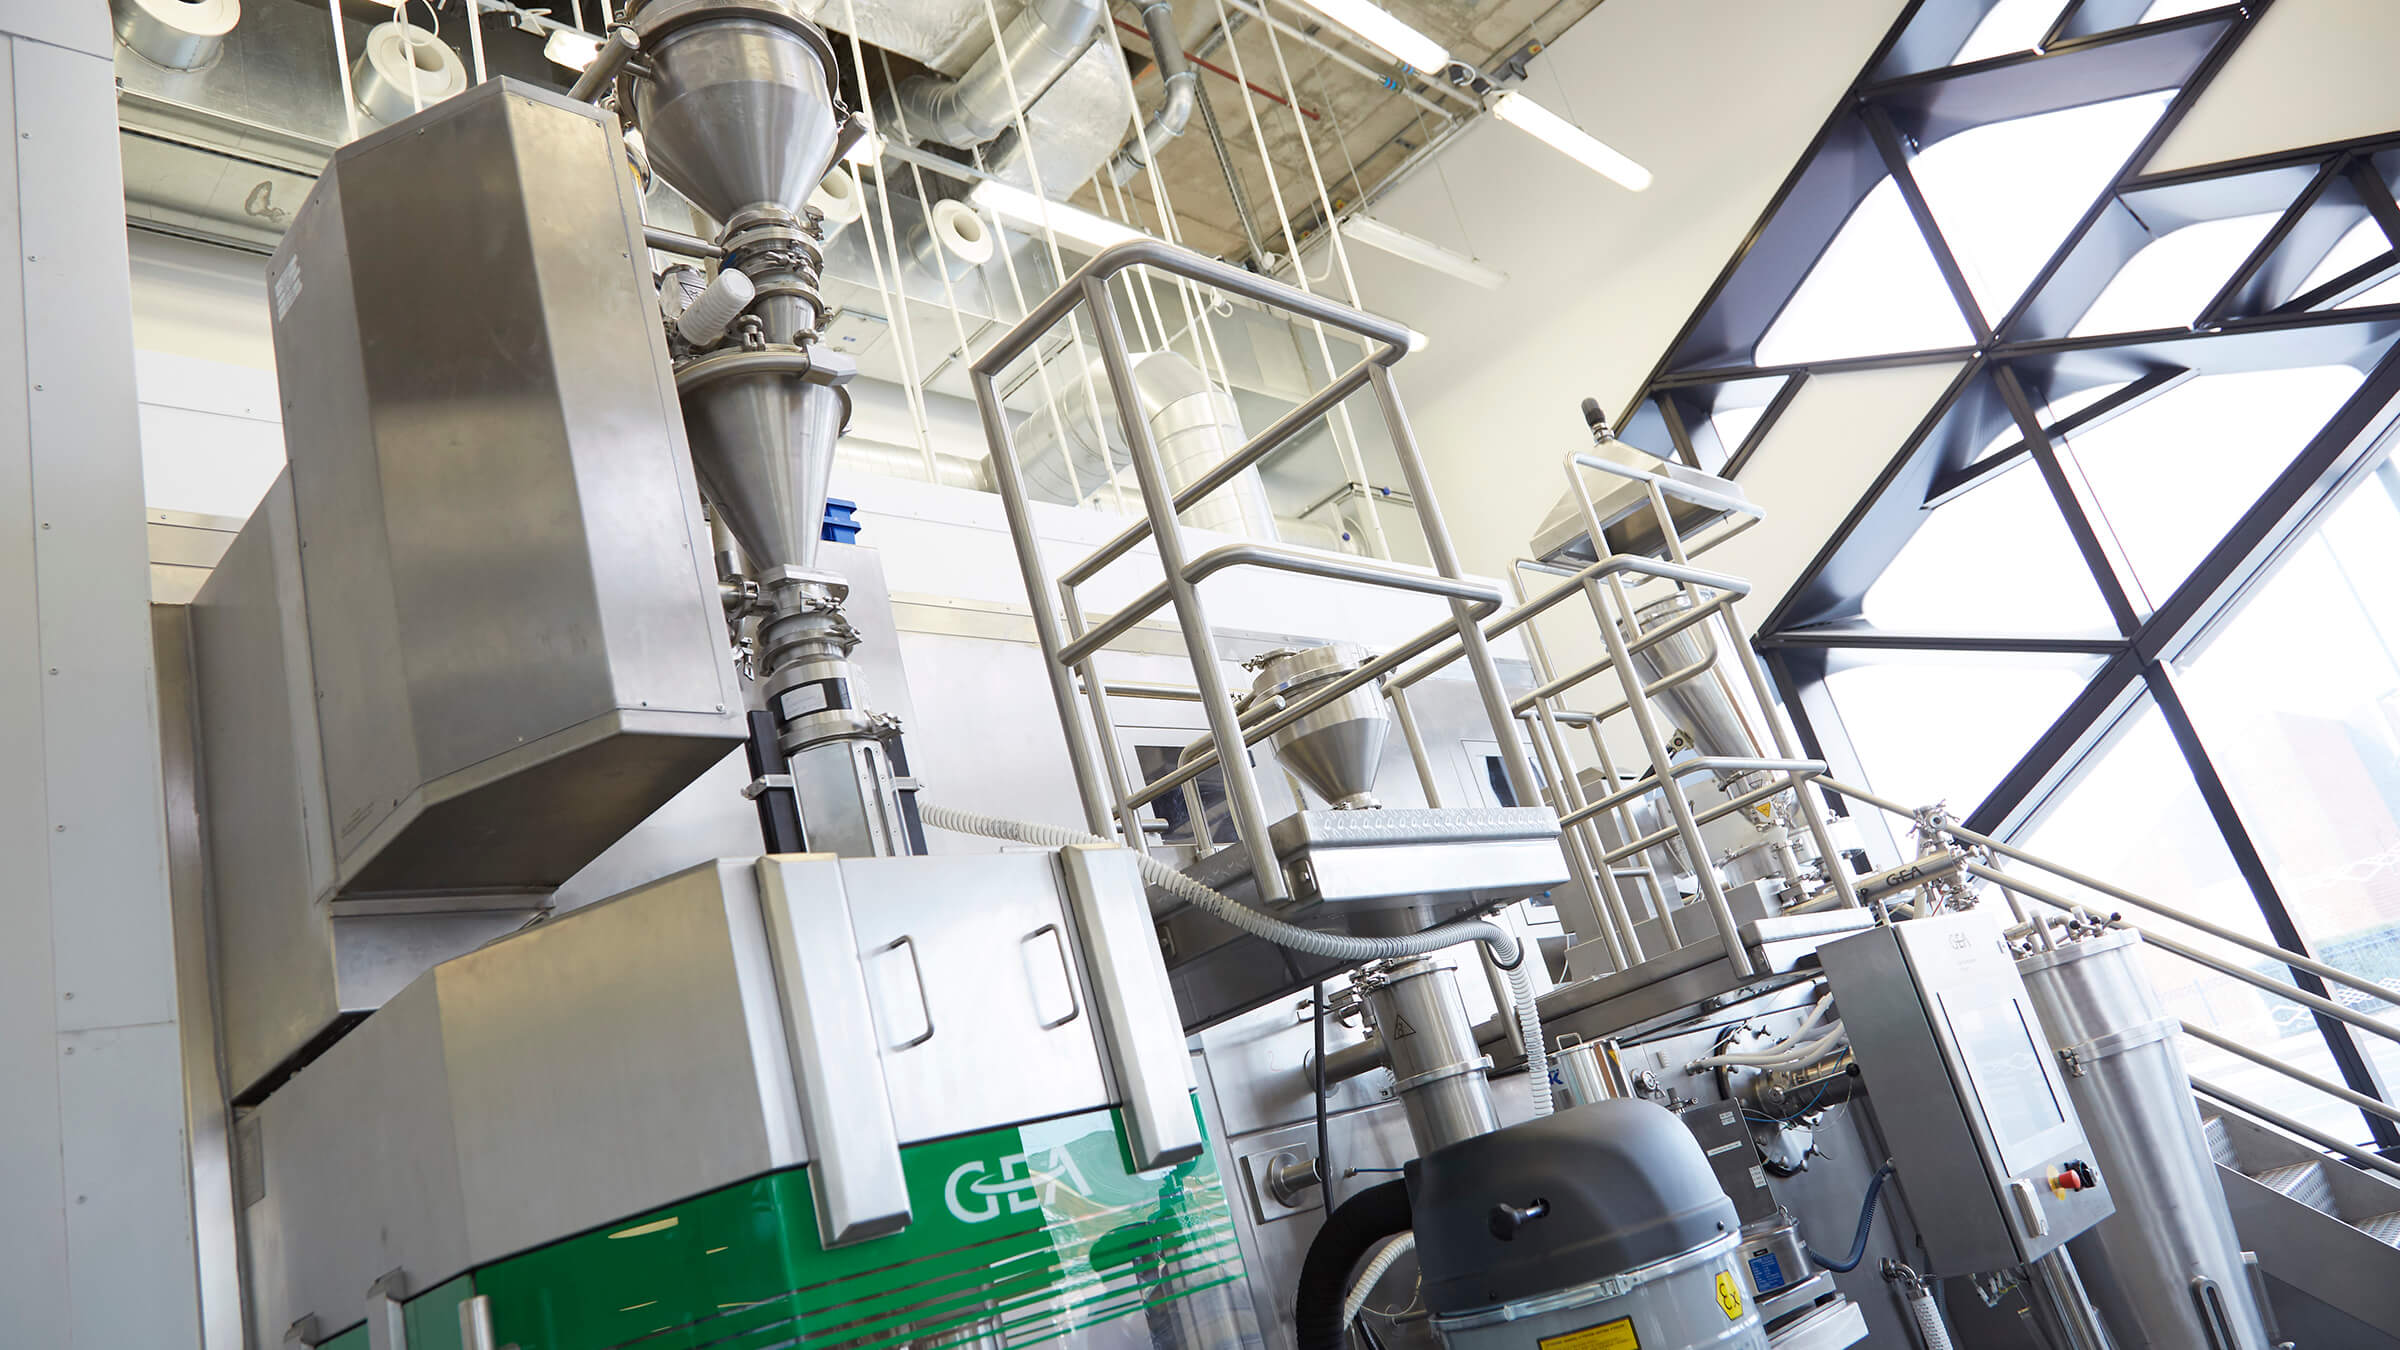 2018.05.28 GEA Equips New integrated Pilot Plant at the University of Sheffield